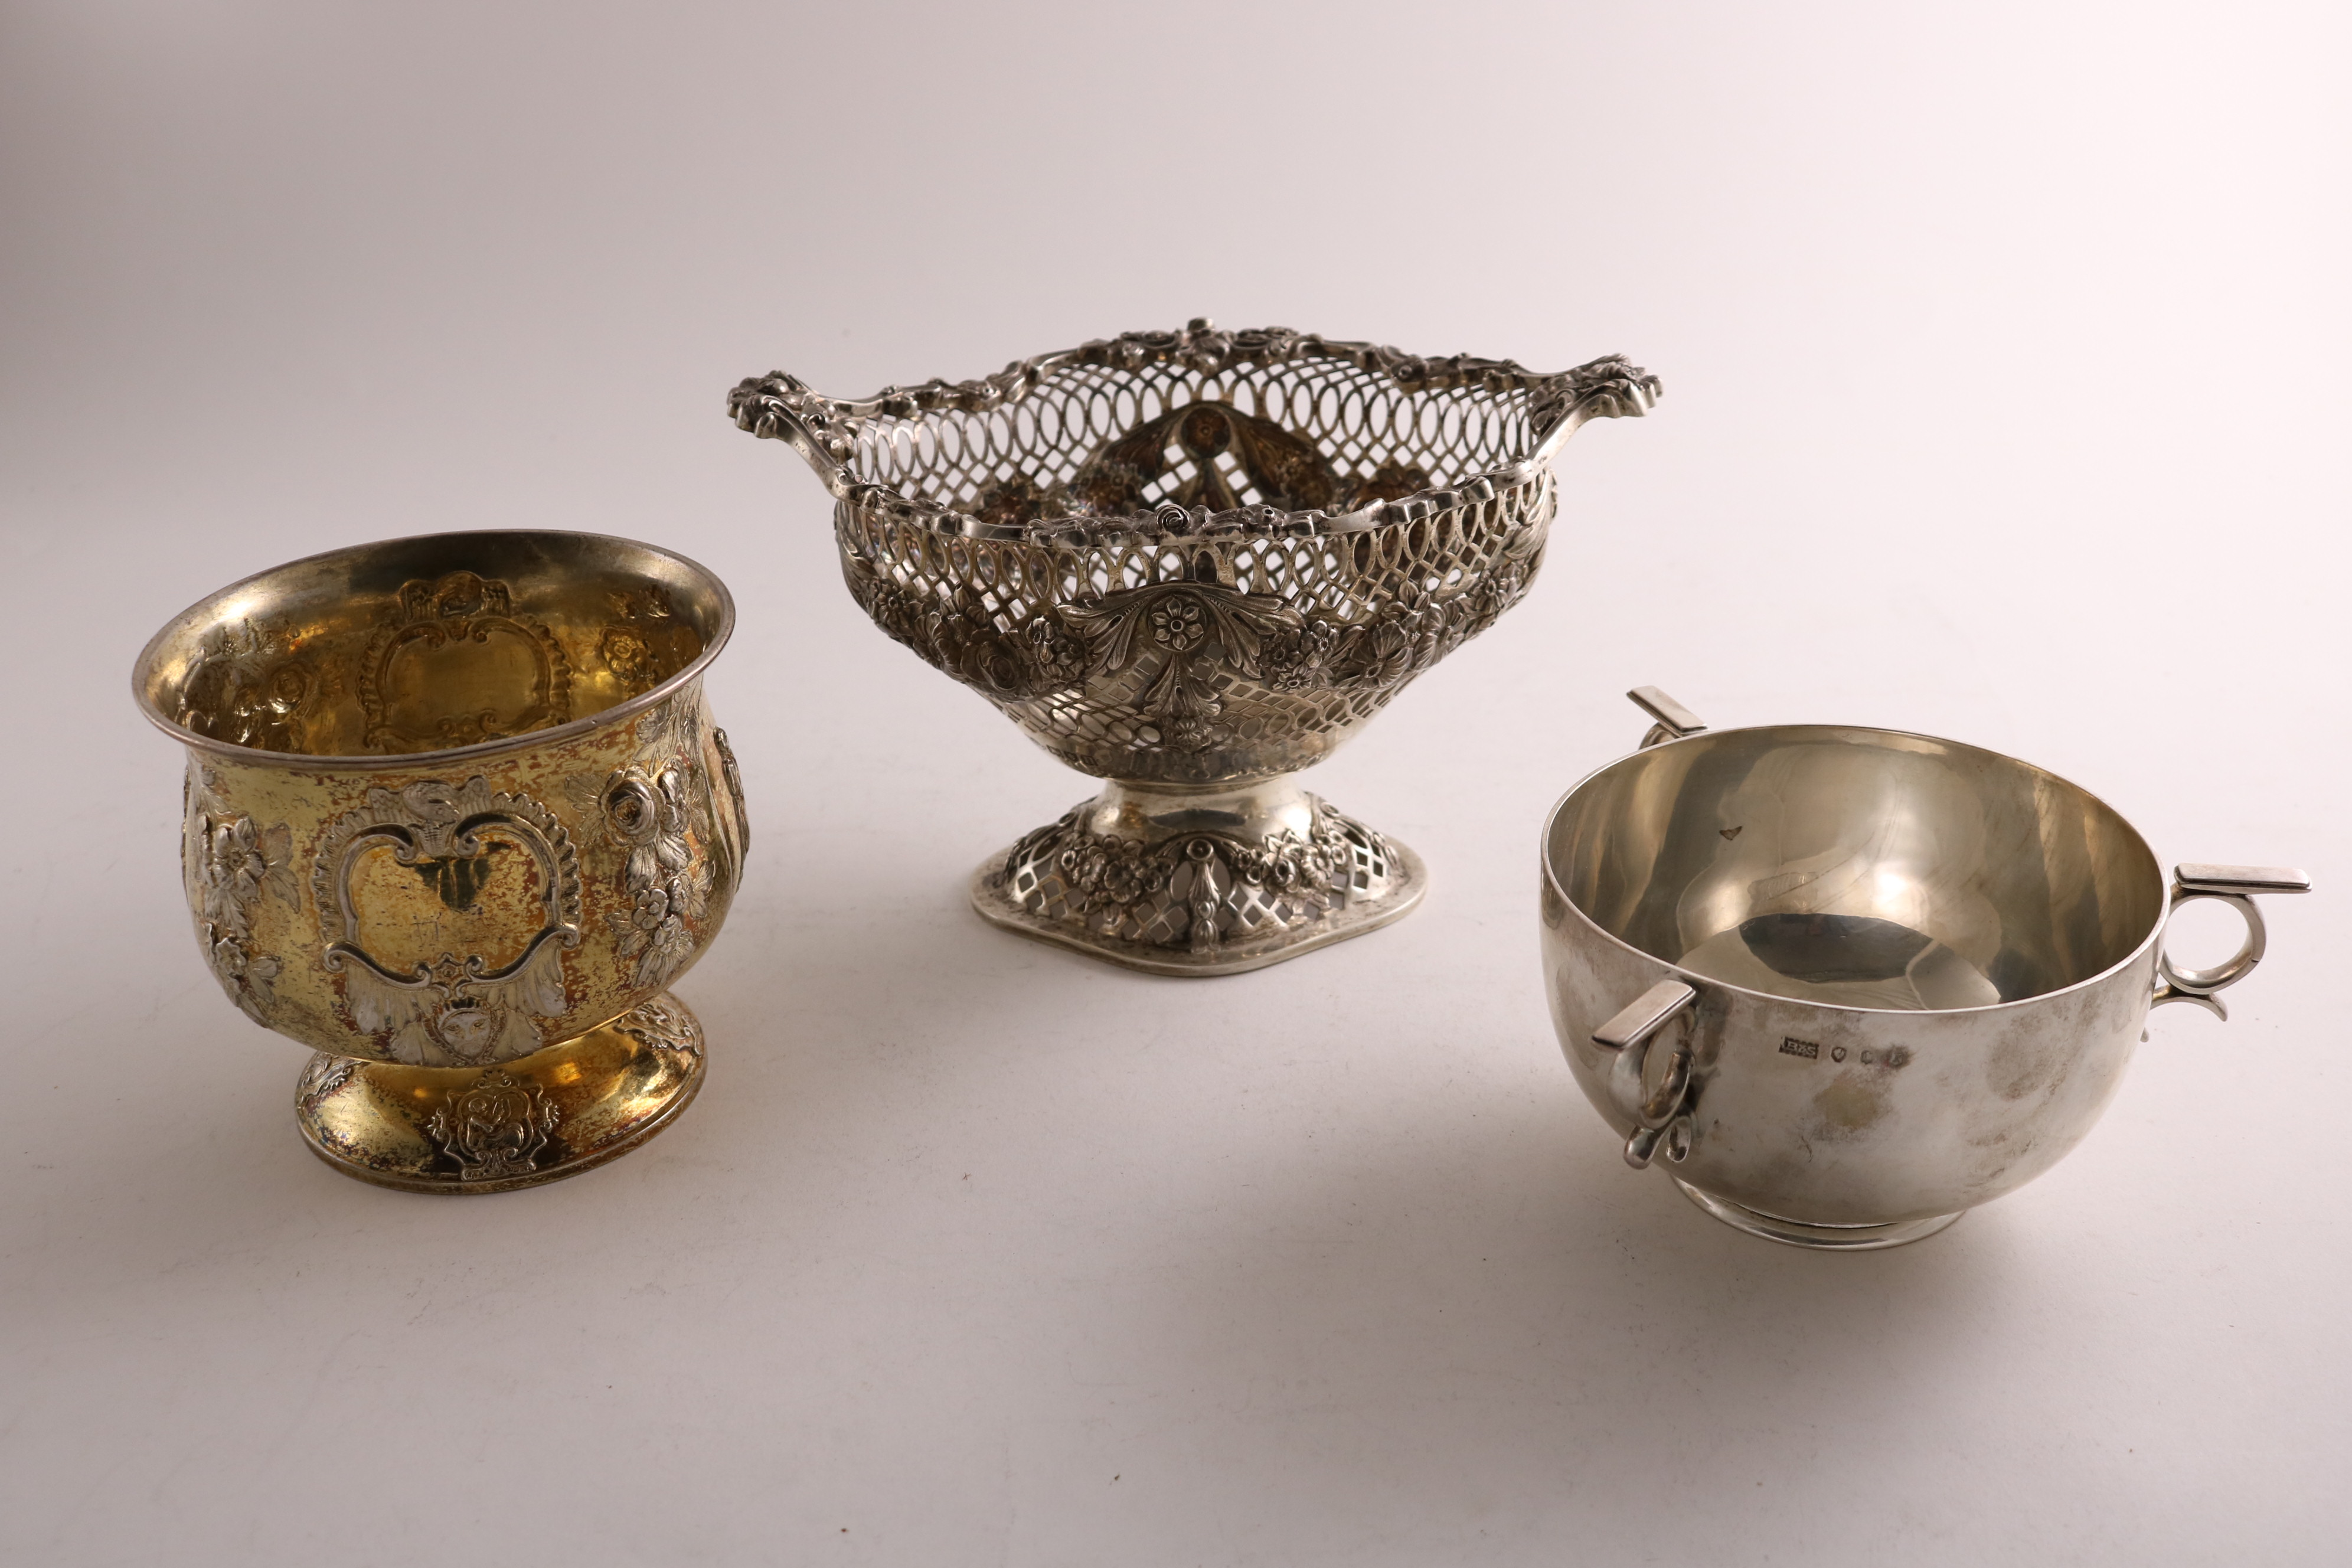 Lot 53 - AN EDWARDIAN SILVER BONBON BASKET of shaped oval outline on a domed foot by the Goldsmiths &